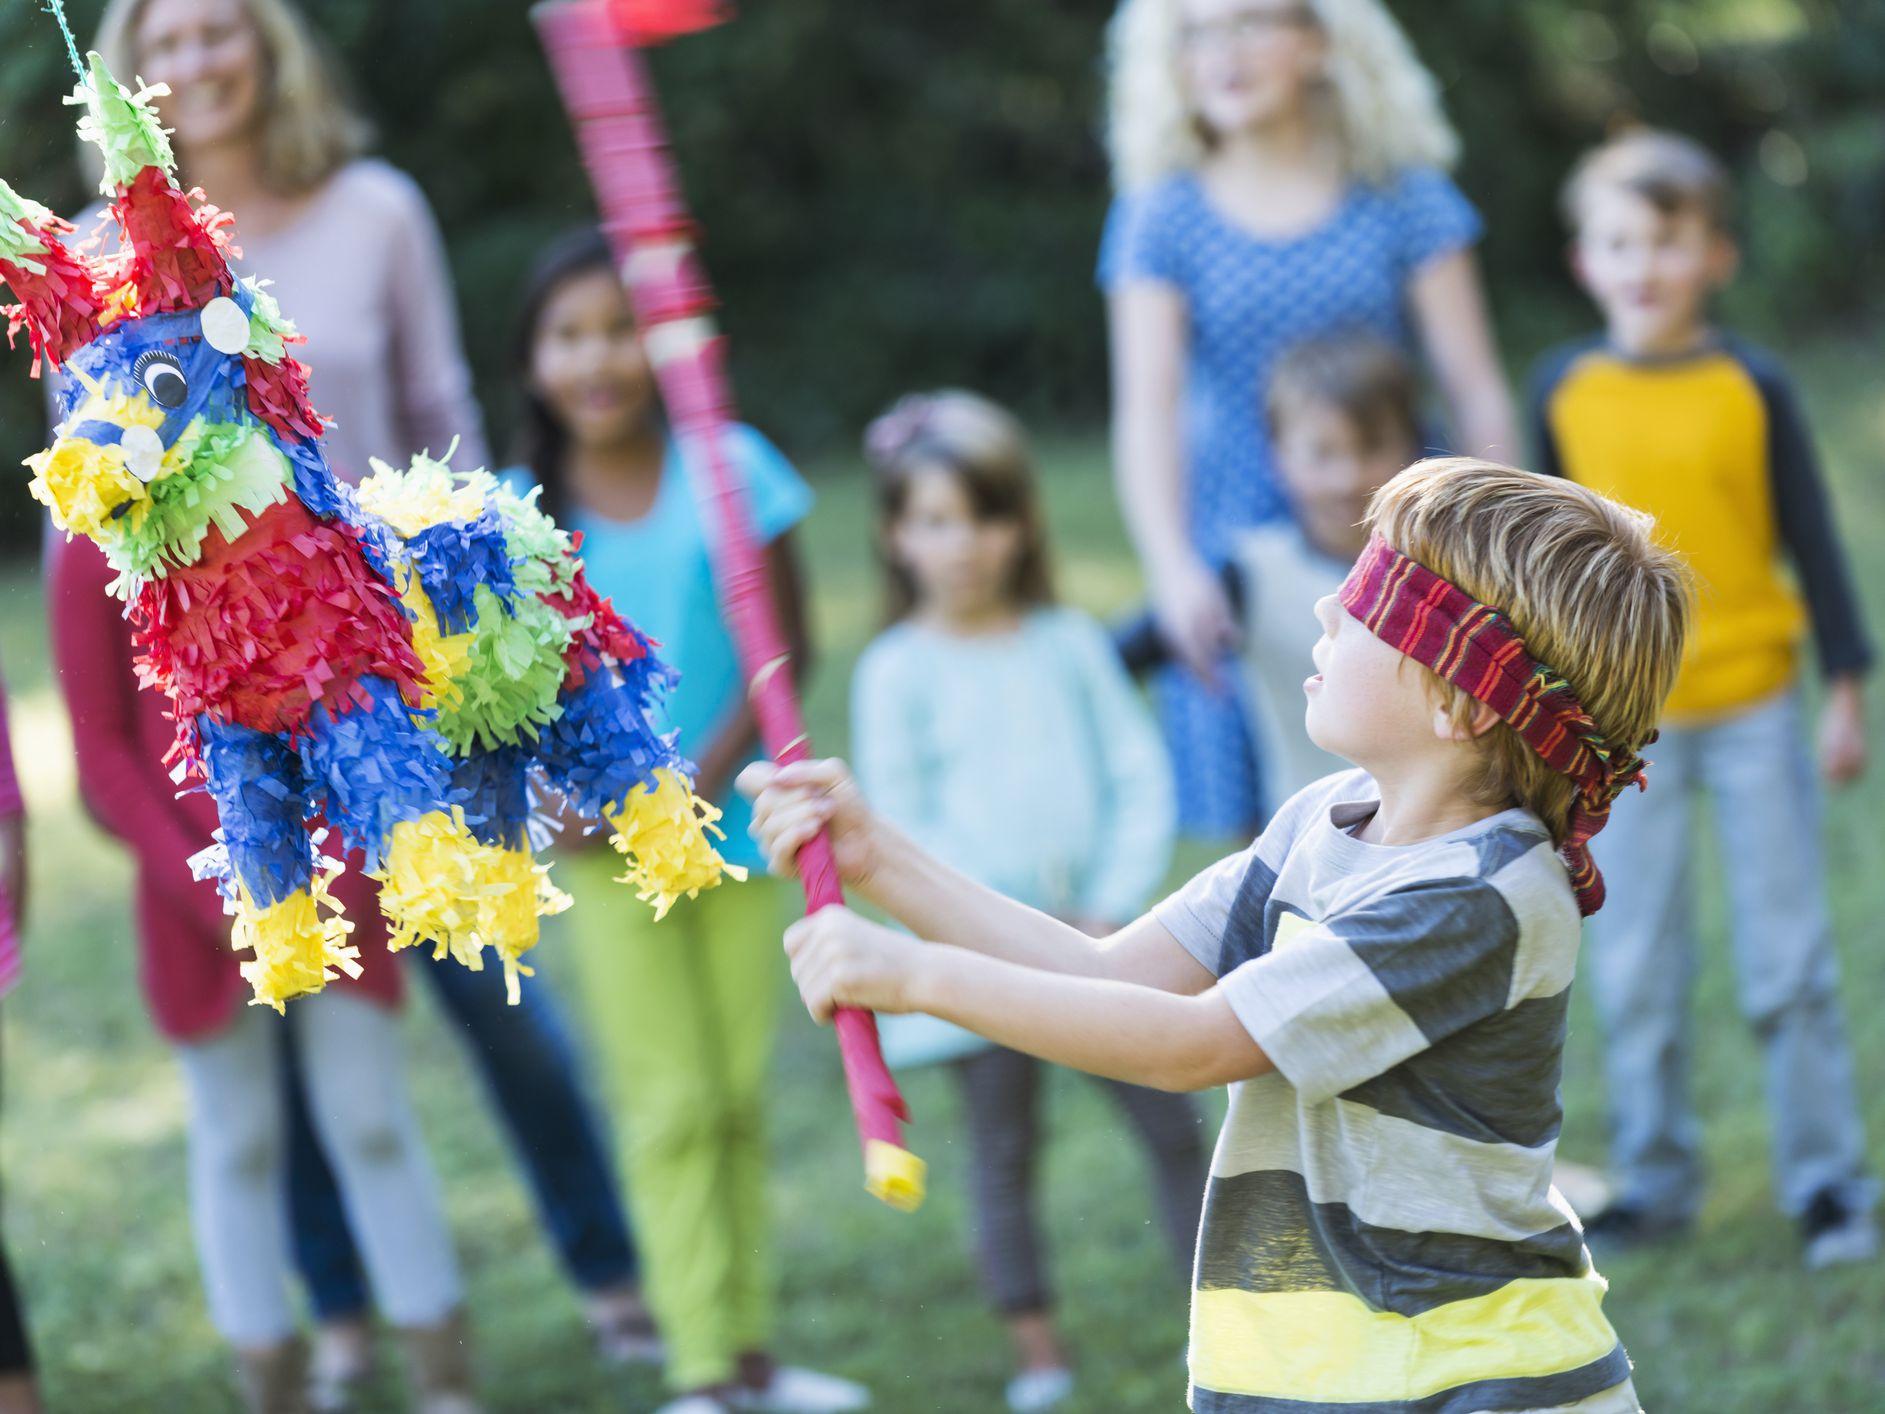 Ways to Make Your Own Pinata